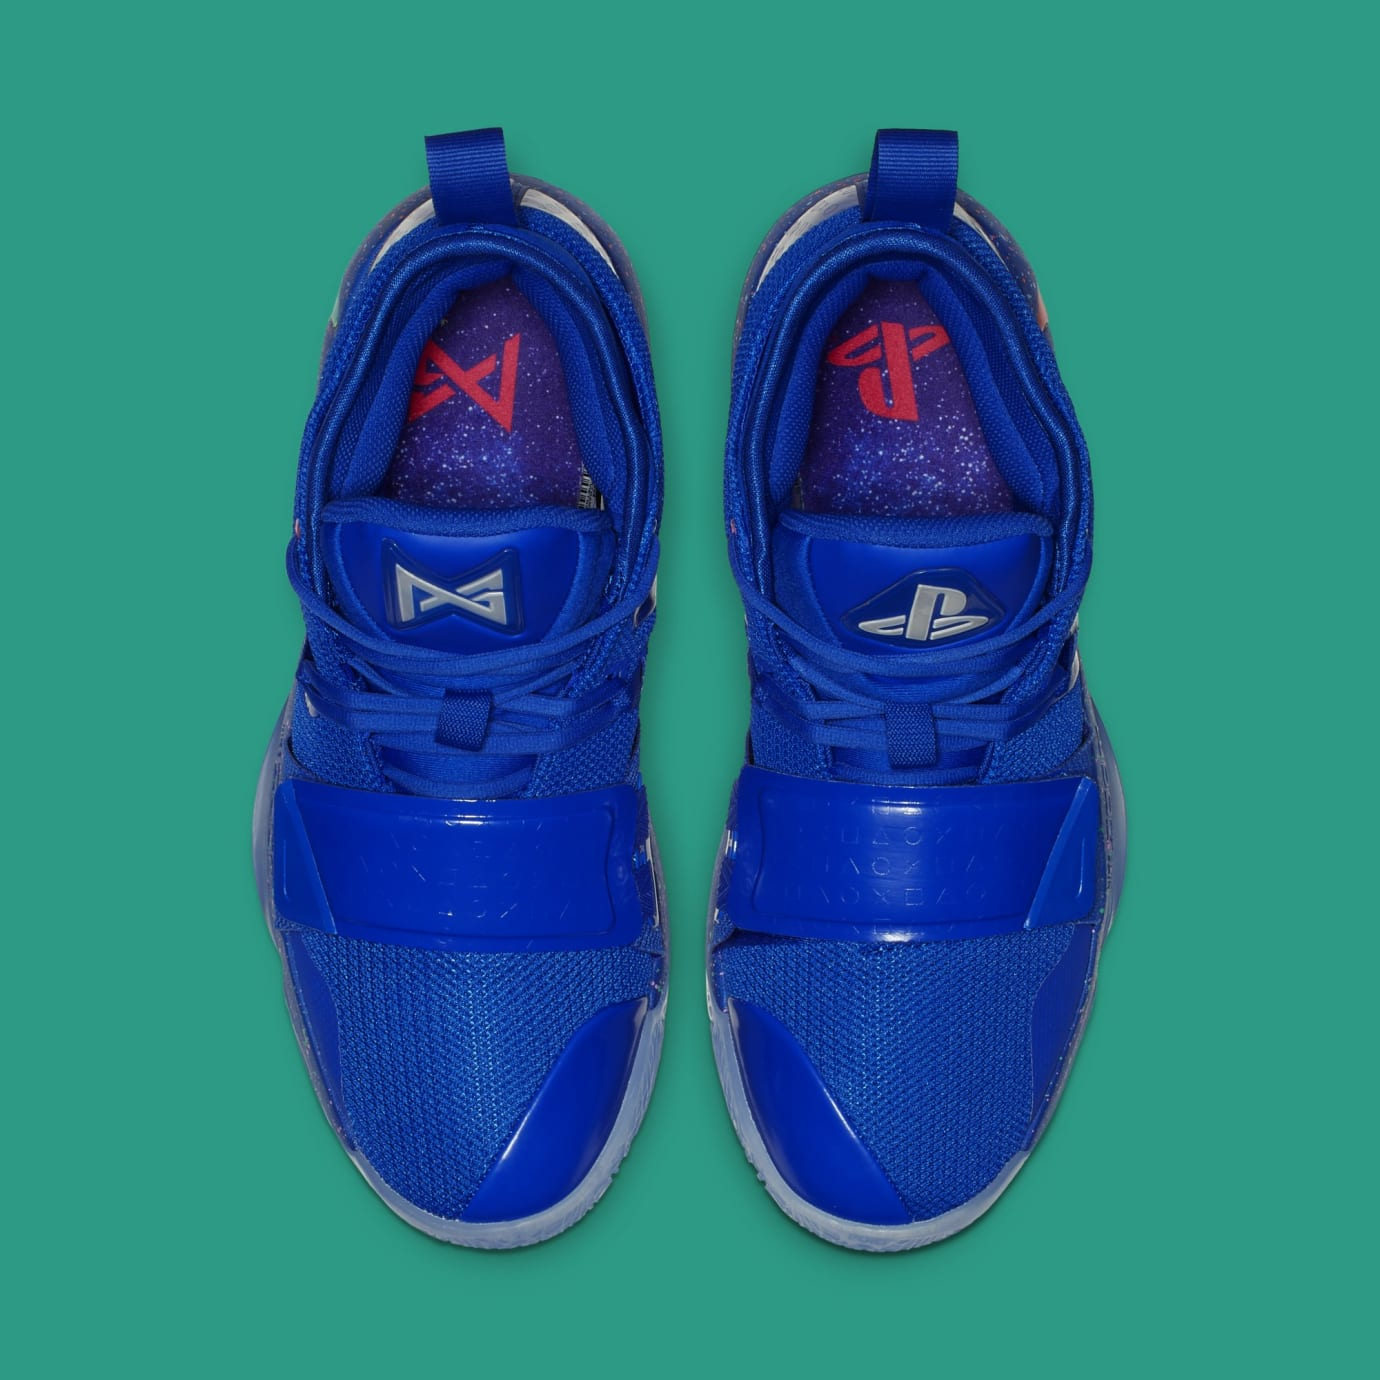 Playstation x Nike PG 2.5 'Blue/Multi-Color' BQ8388-900 (Top)